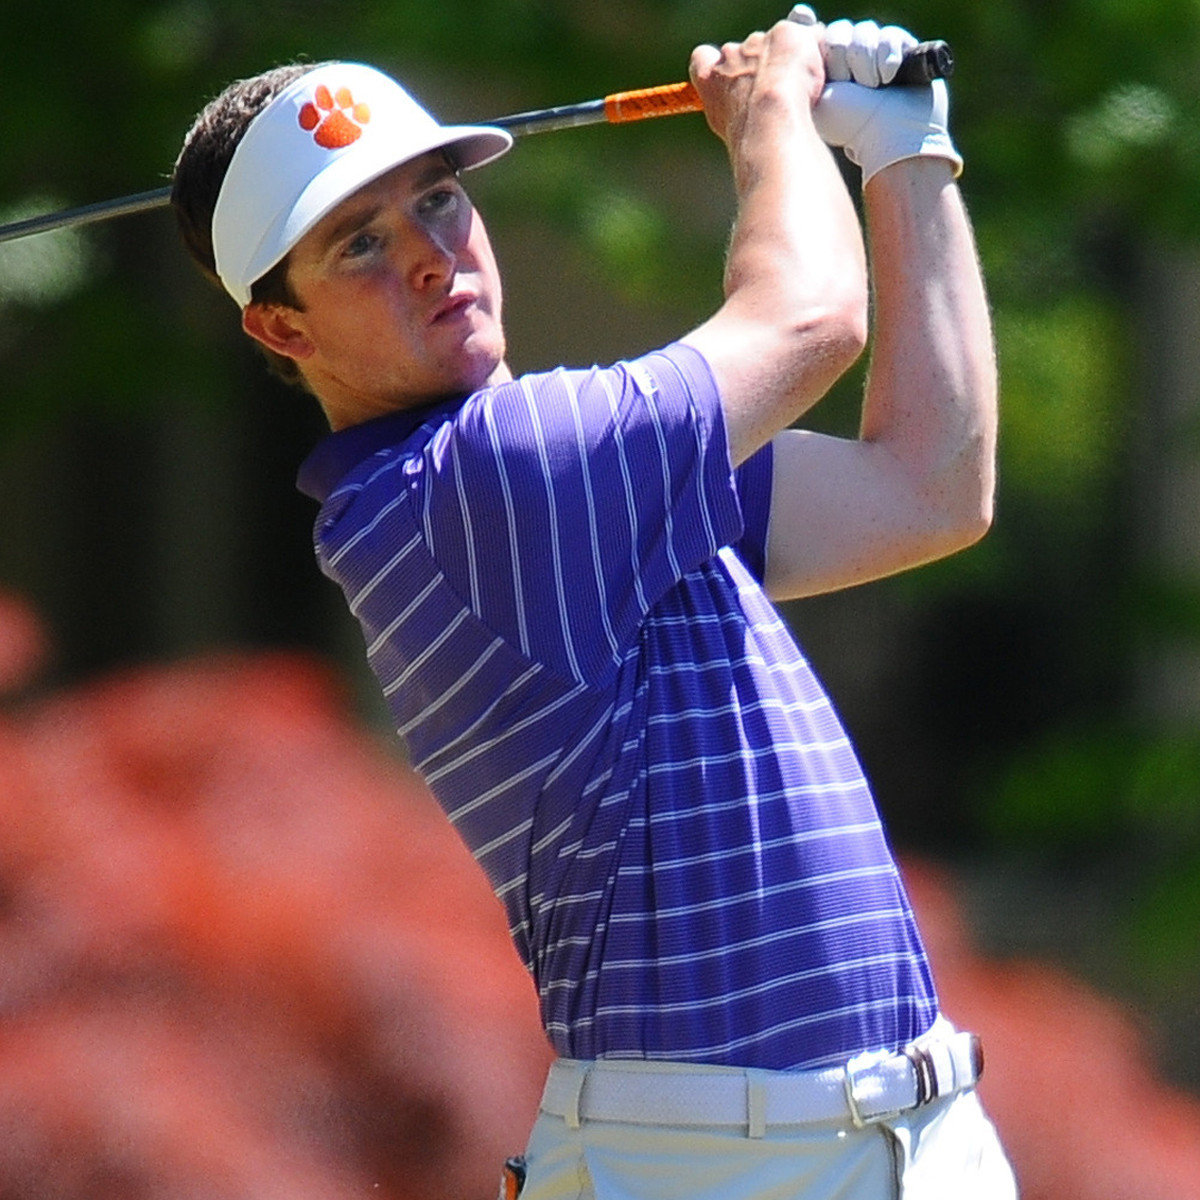 Clemson Fifth Entering Final Round at US Collegiate